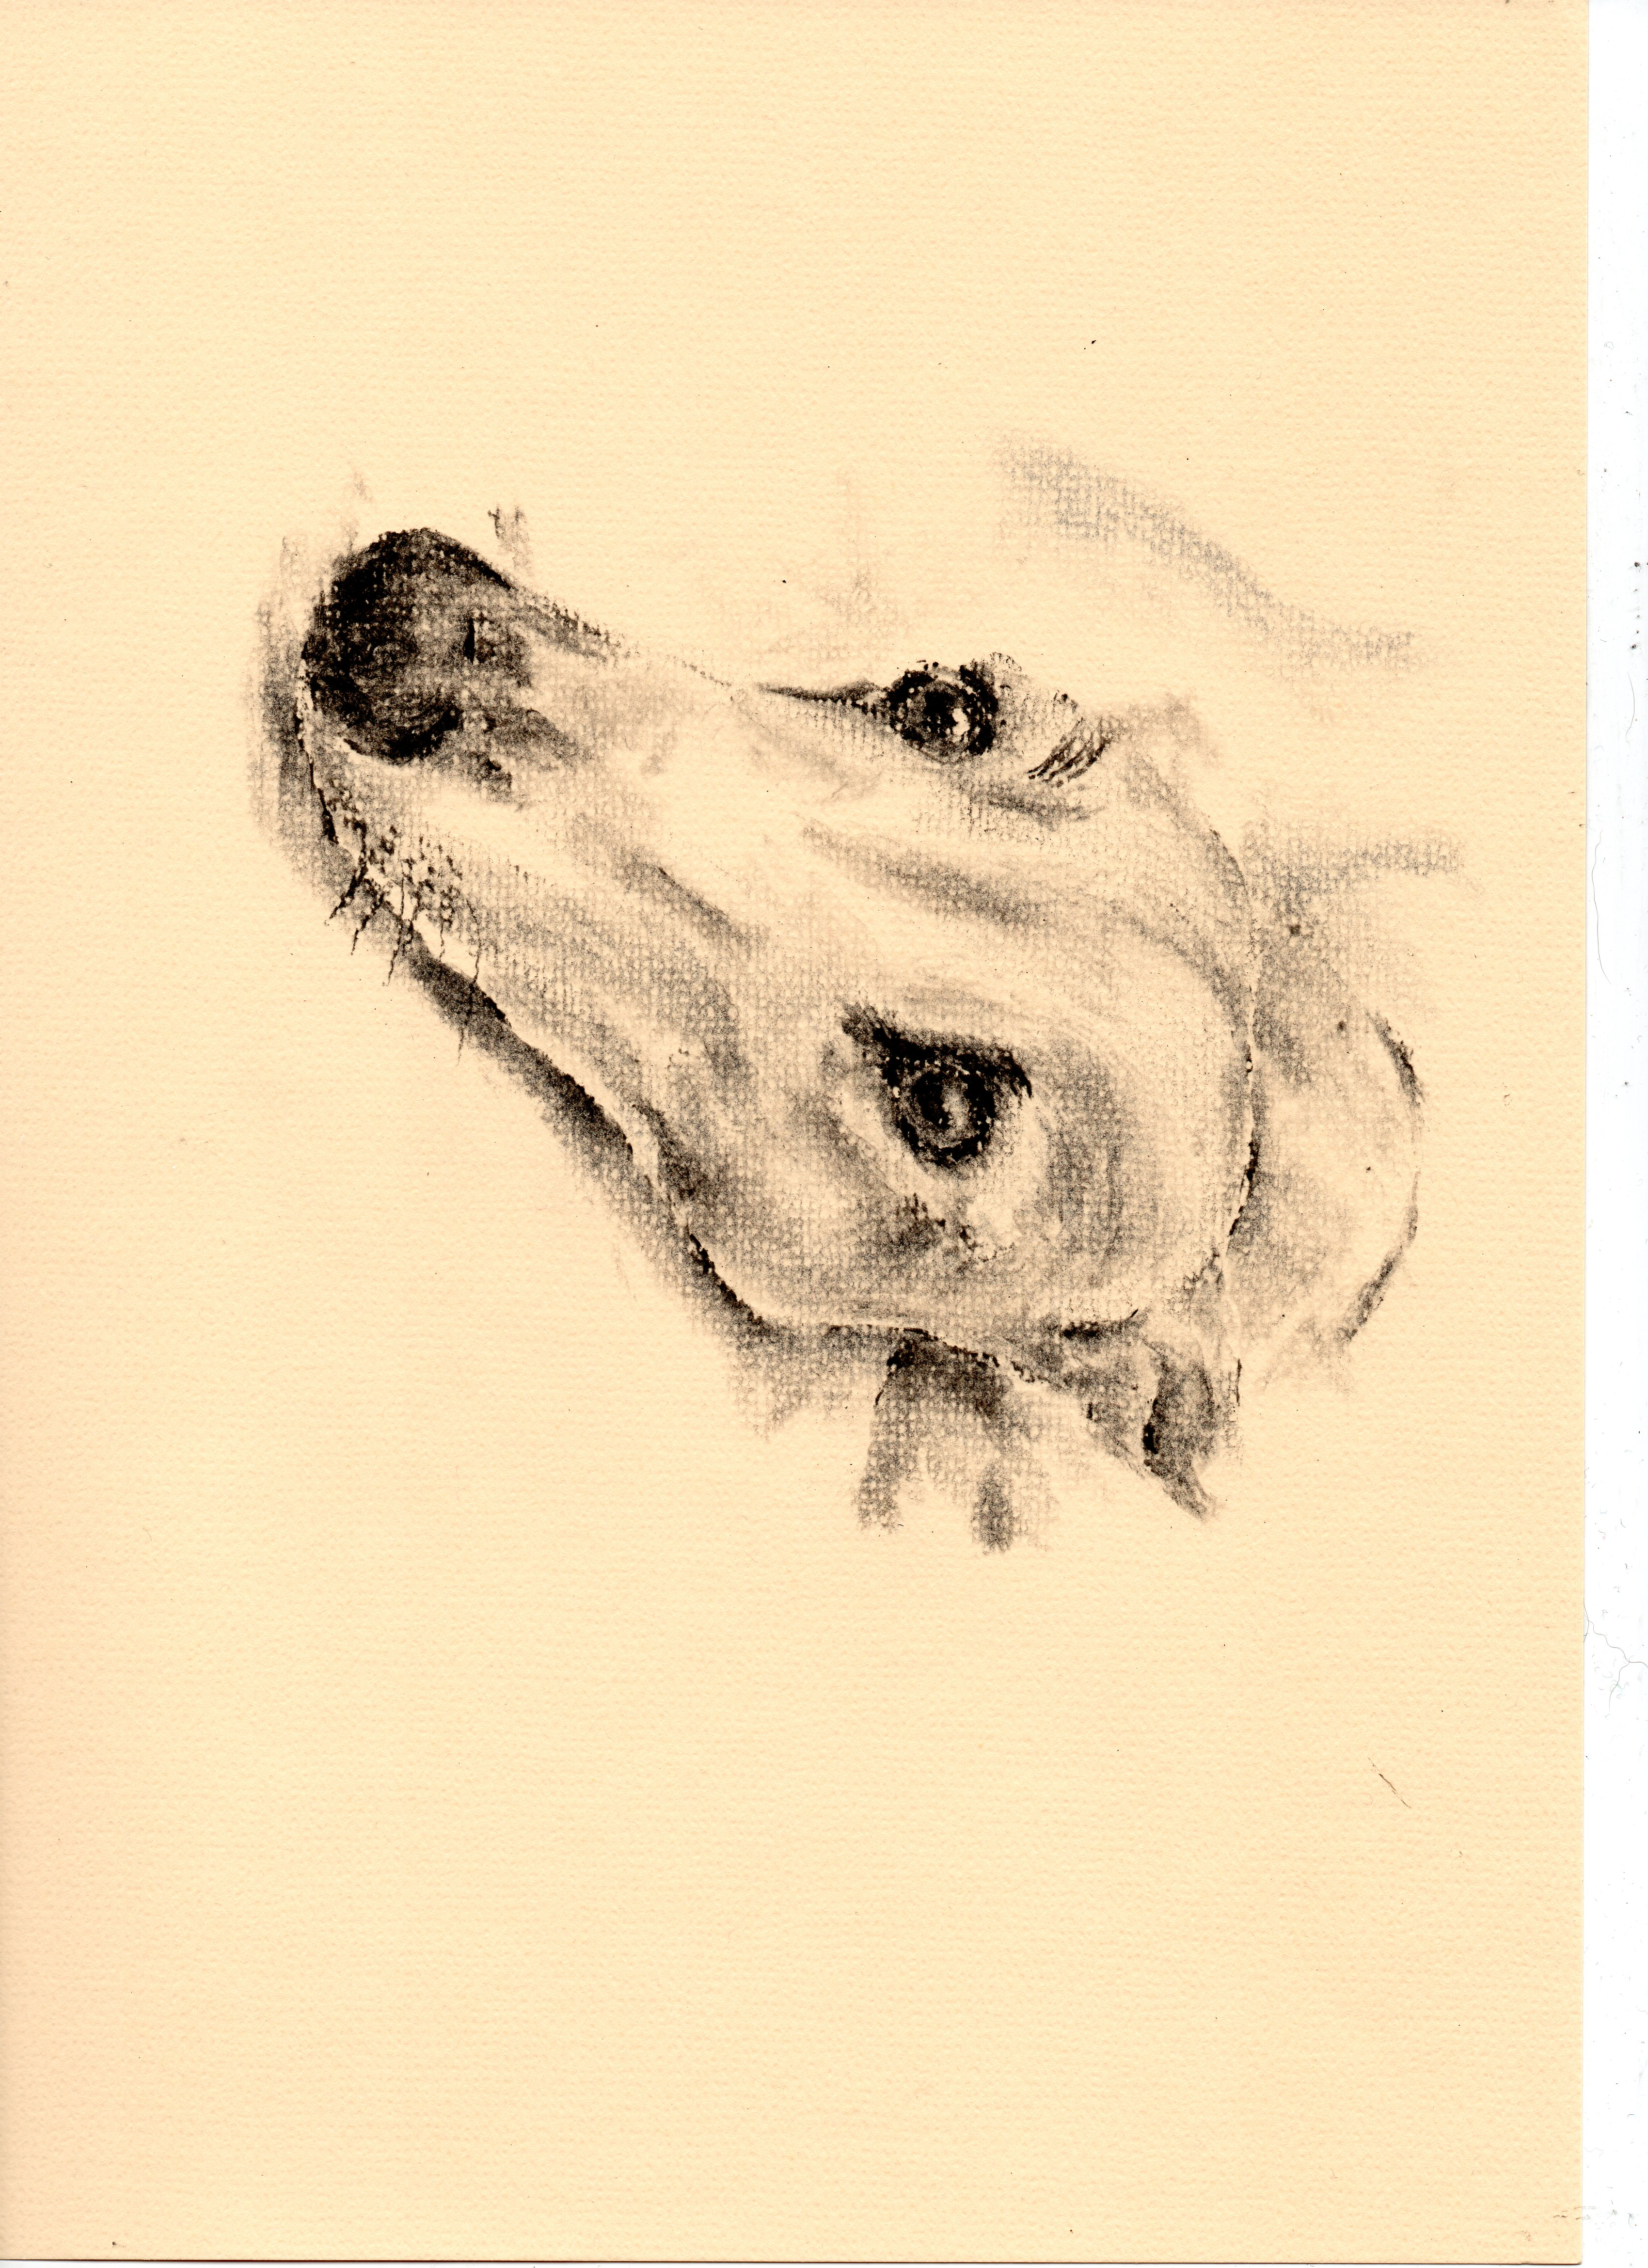 Greyhound sketch